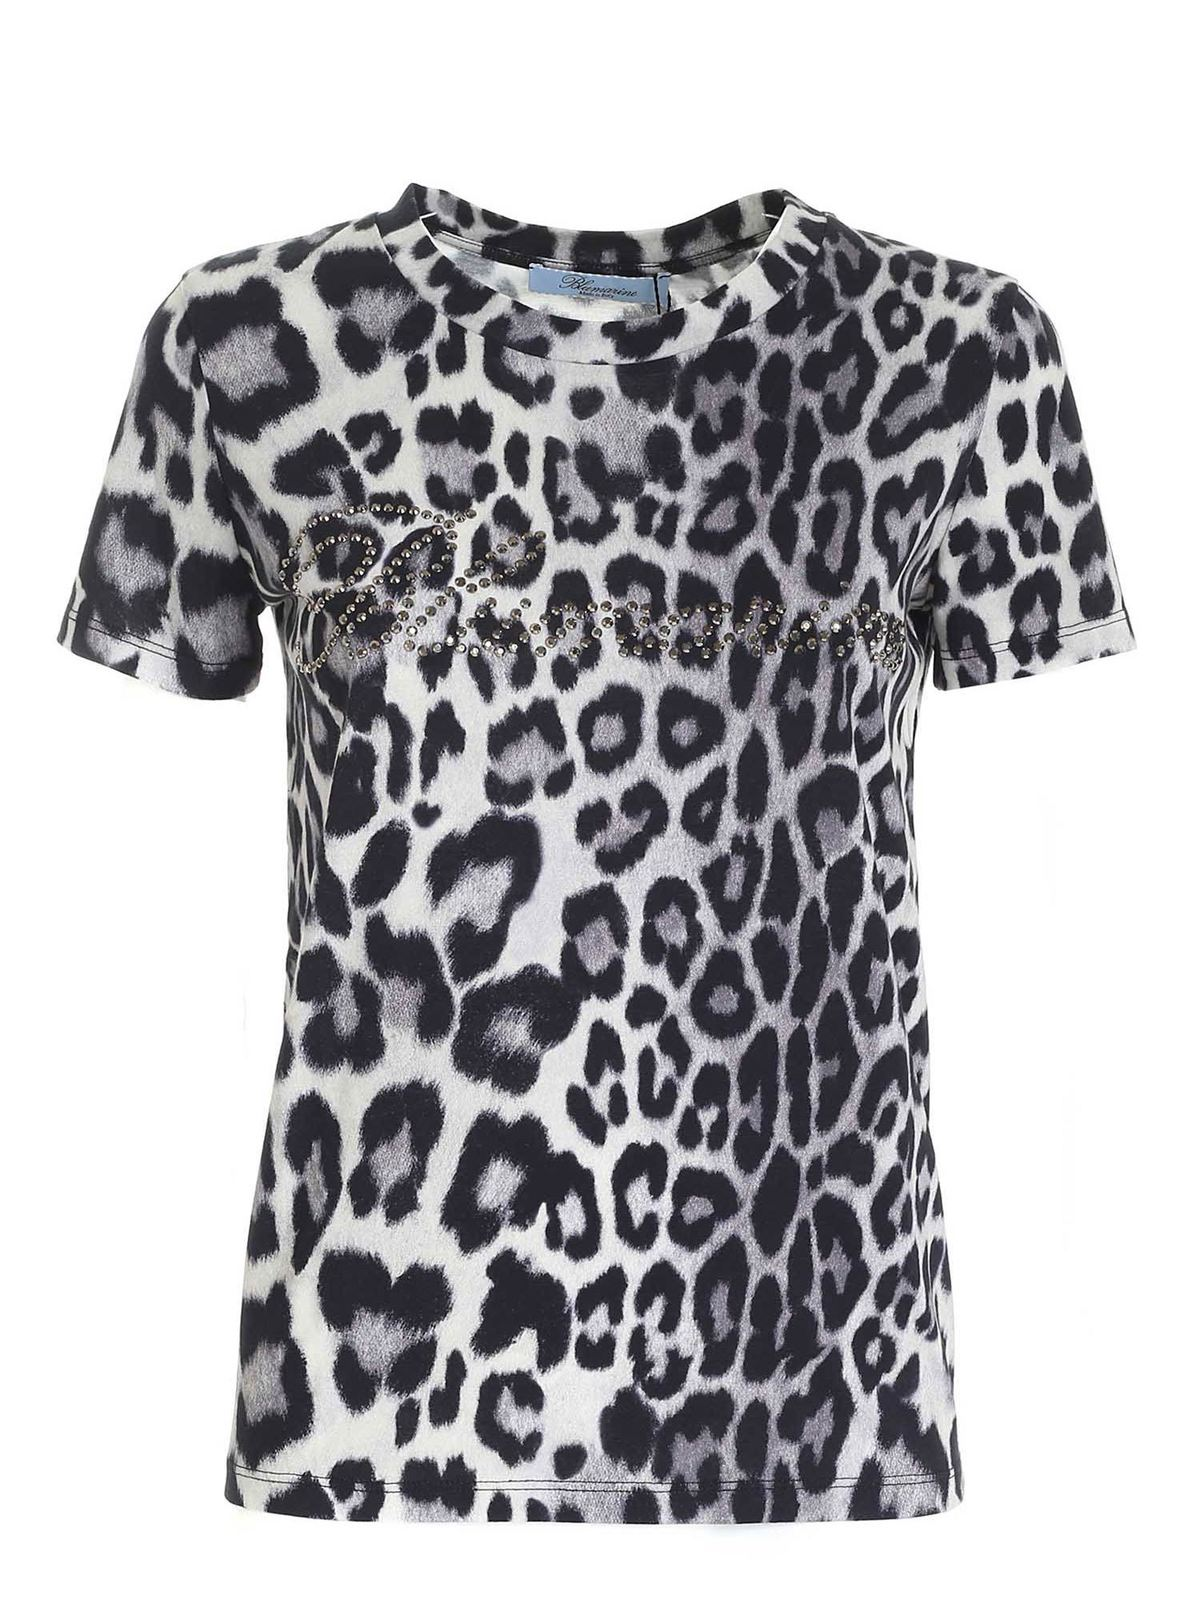 Blumarine ANIMAL PRINT T-SHIRT FEATURING RHINESTONE LOG